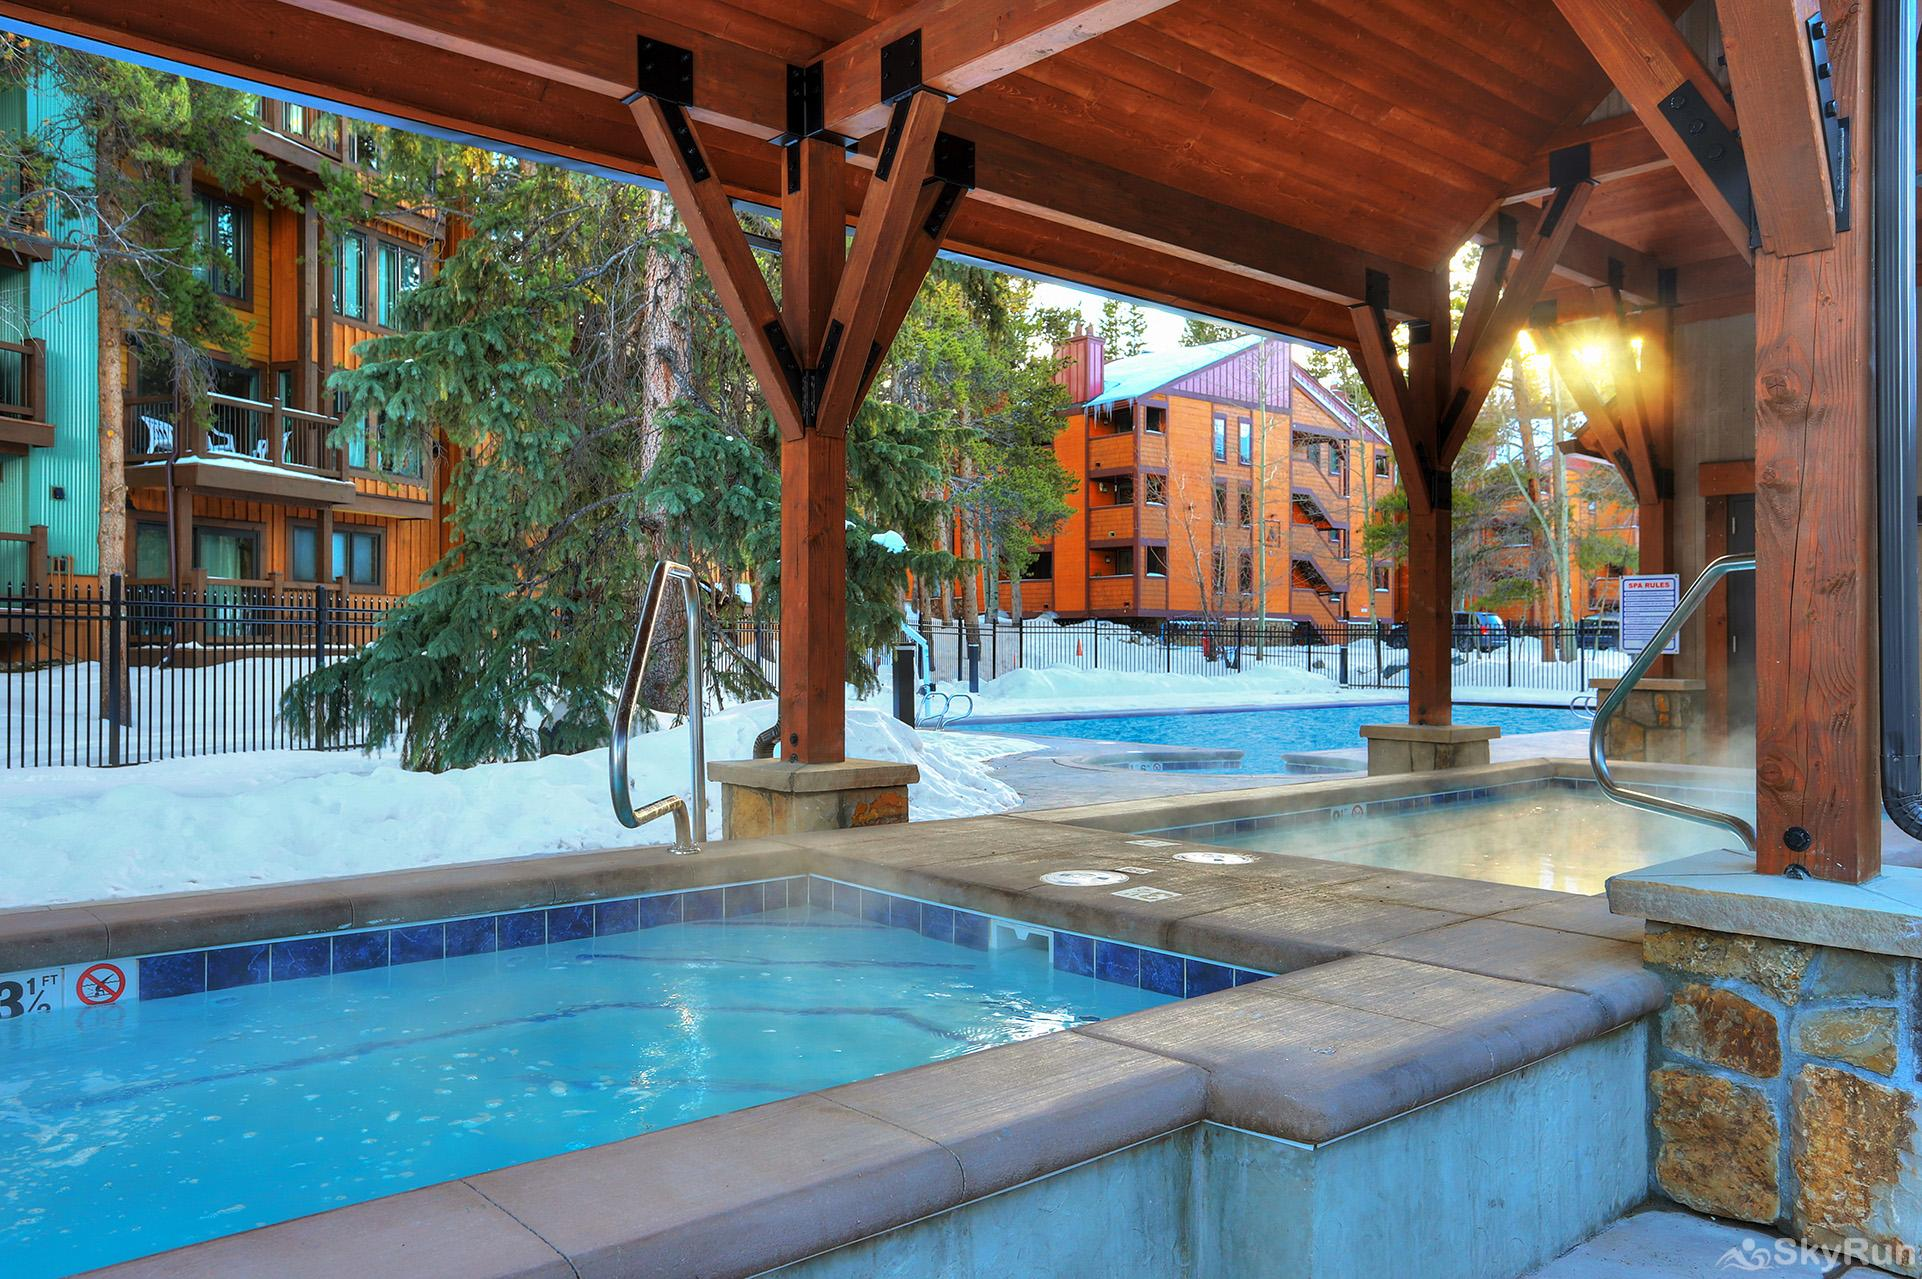 Powderhorn 503 Relax and unwind in the outdoor heated pool & hot tubs